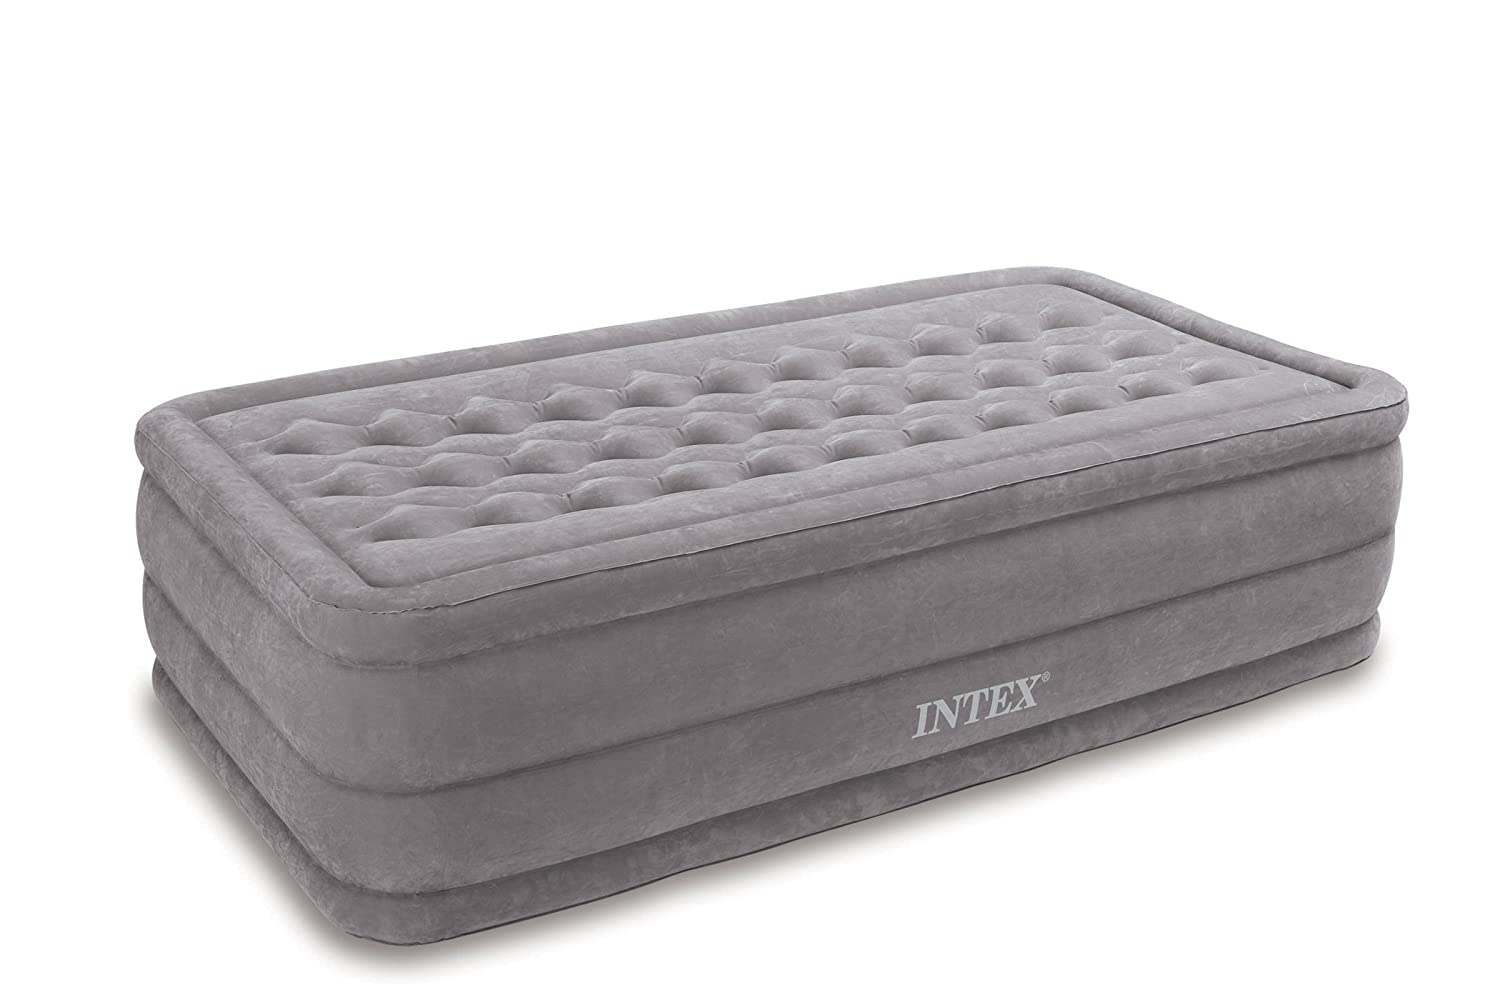 review bed best bestairmattressguide kit with queen airbed air com intex rated guides frame mattress comfort definitive